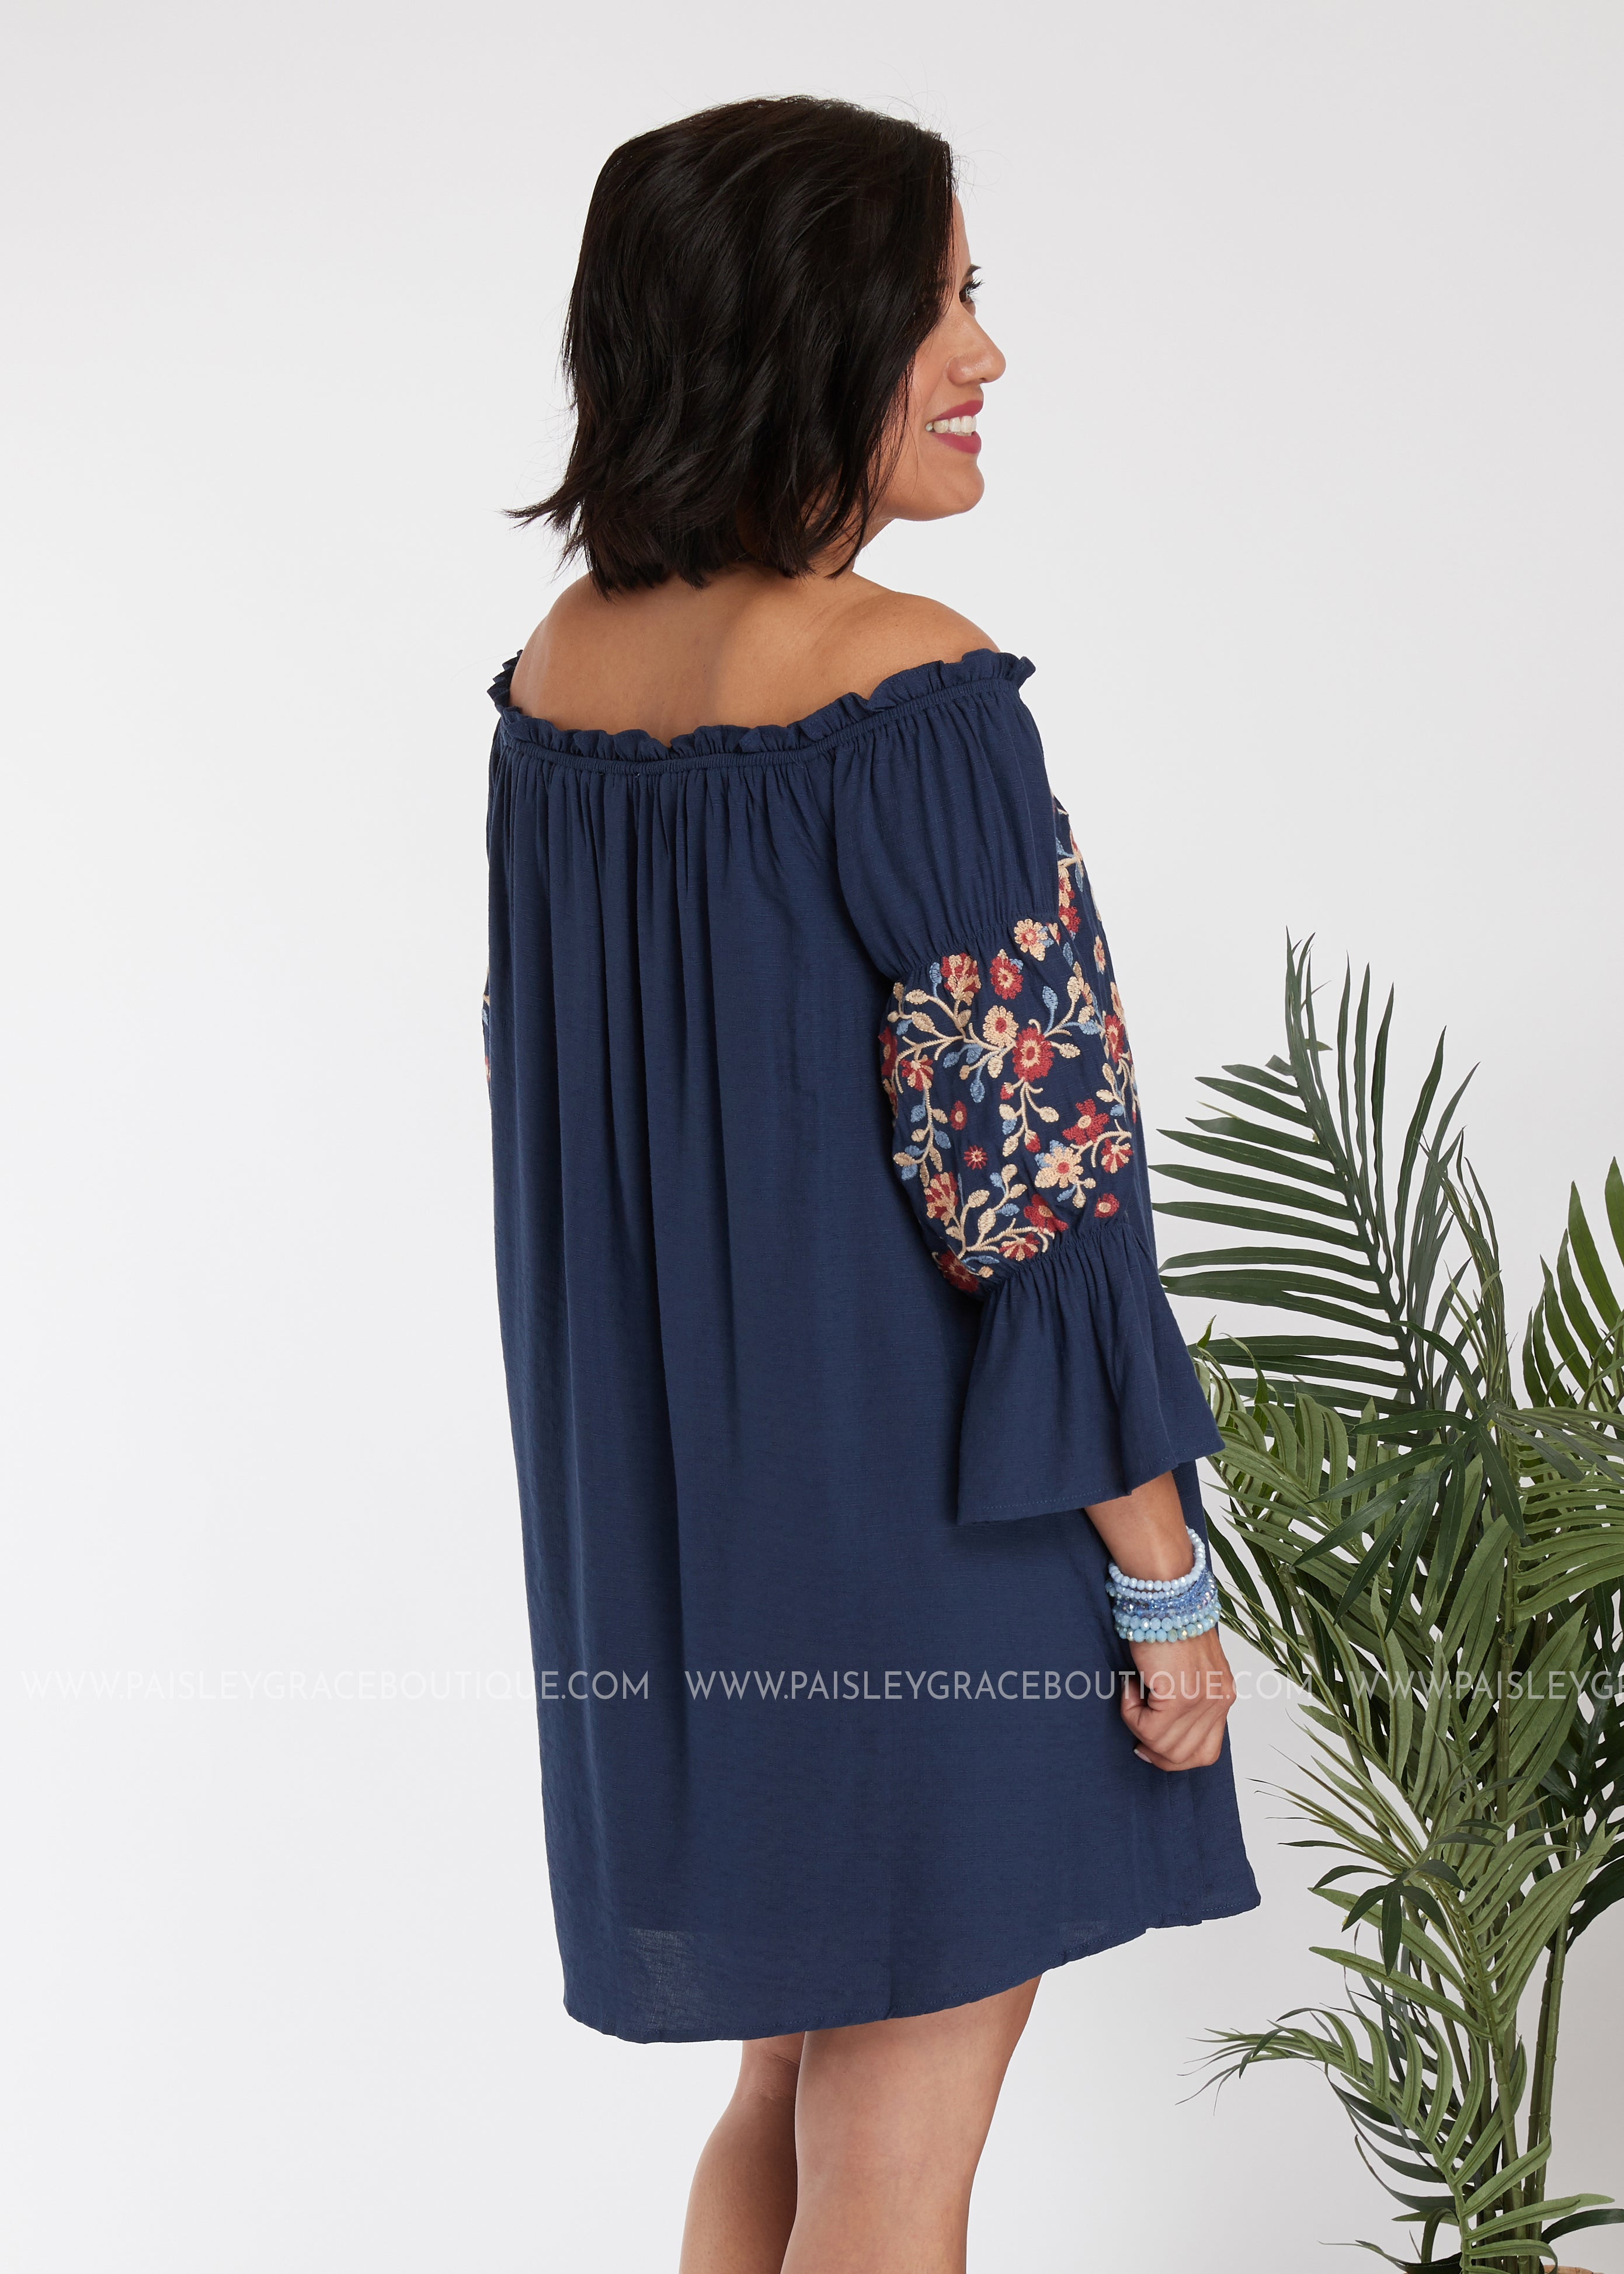 Cora Embroidered Tunic/Dress - FINAL SALE